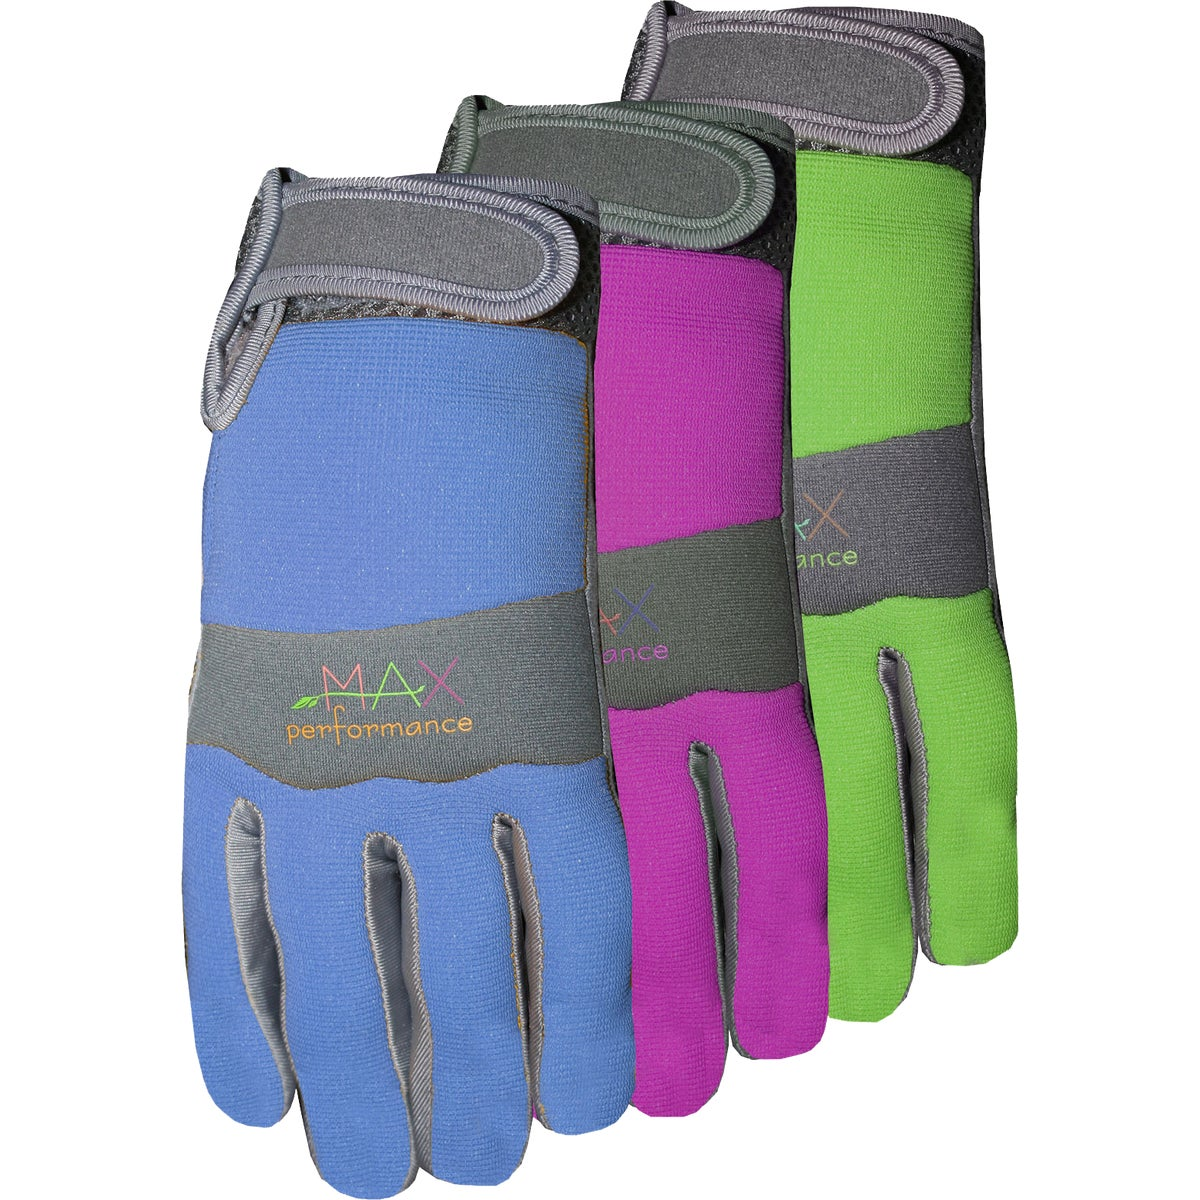 LRG LADY LTHR GRDN GLOVE - 1042L by Wells Lamont